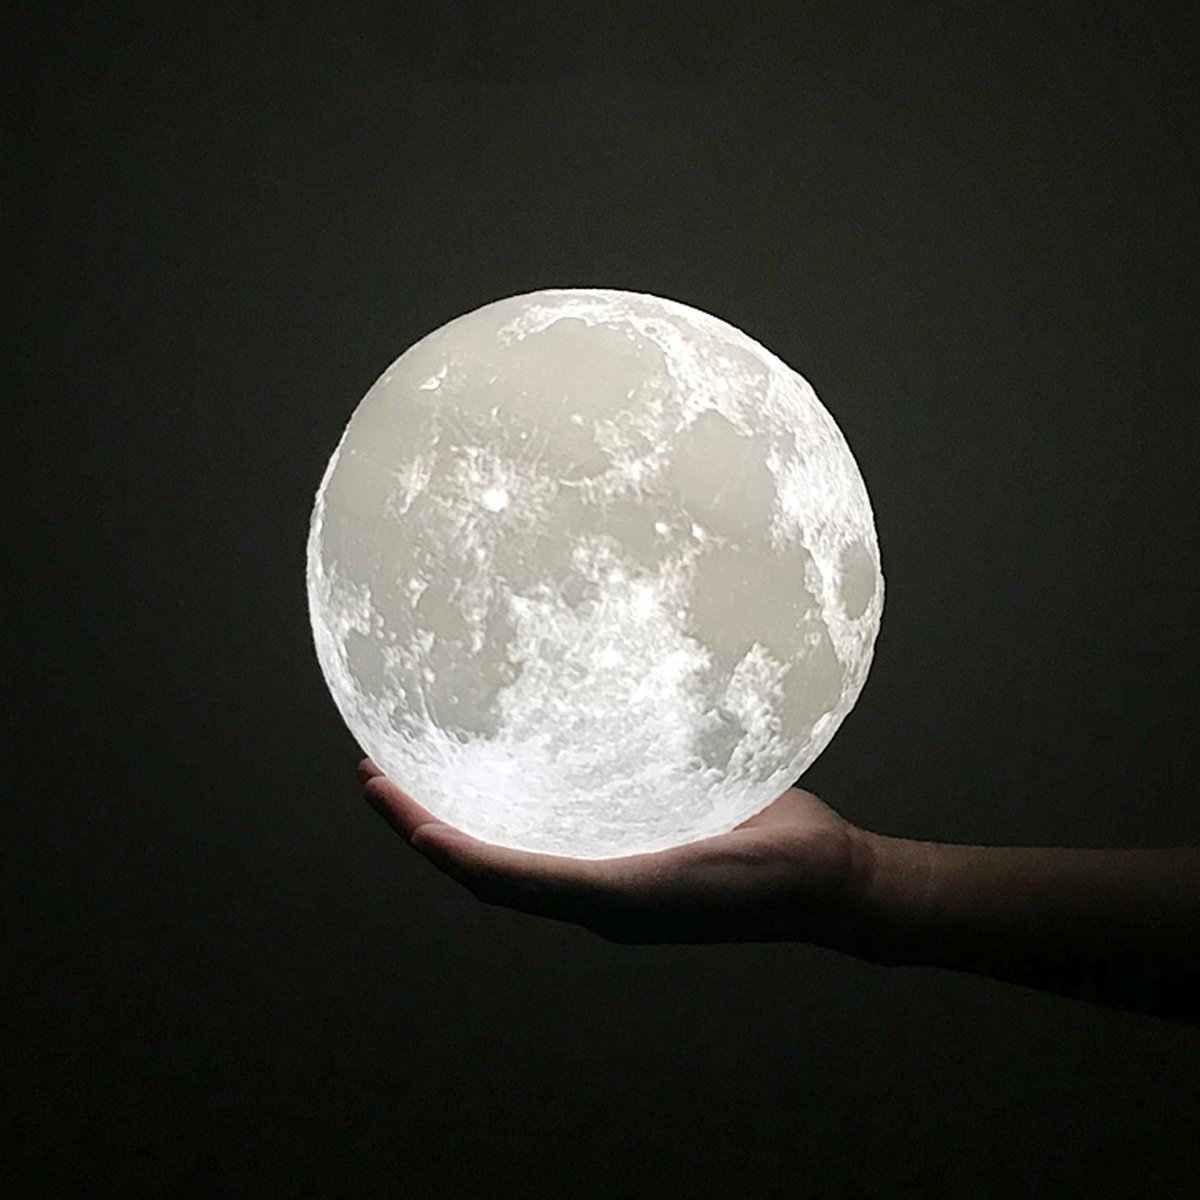 Moon Lamp, HOLA 3D Printed Moon Light Night Light, Glowing Moon Globe Light LED Table Lamp, Dimmable Brightness Two Tone Touch Control USB Rechargeable Lunar Light for Creative Gift, Bedroom, 5.9 Inch by HOLA (Image #1)